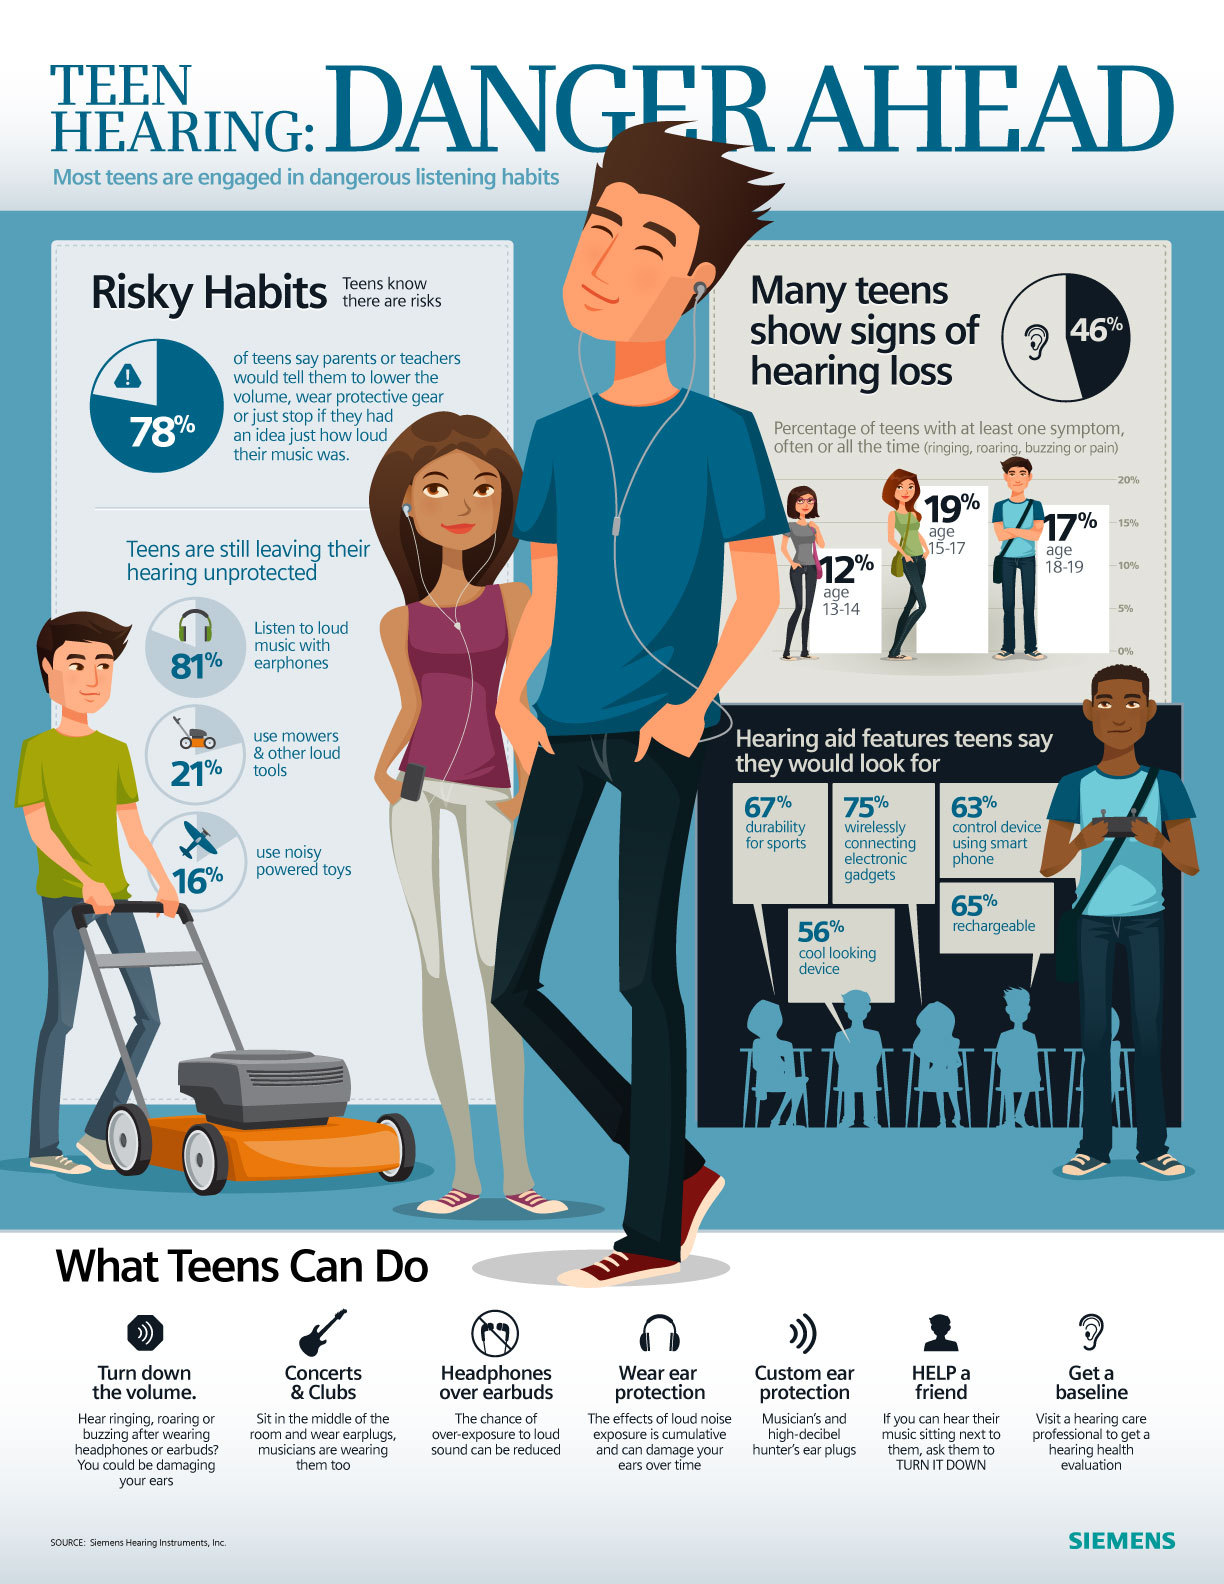 Nearly Half of Teens Showing Potential Signs of Hearing Loss ...